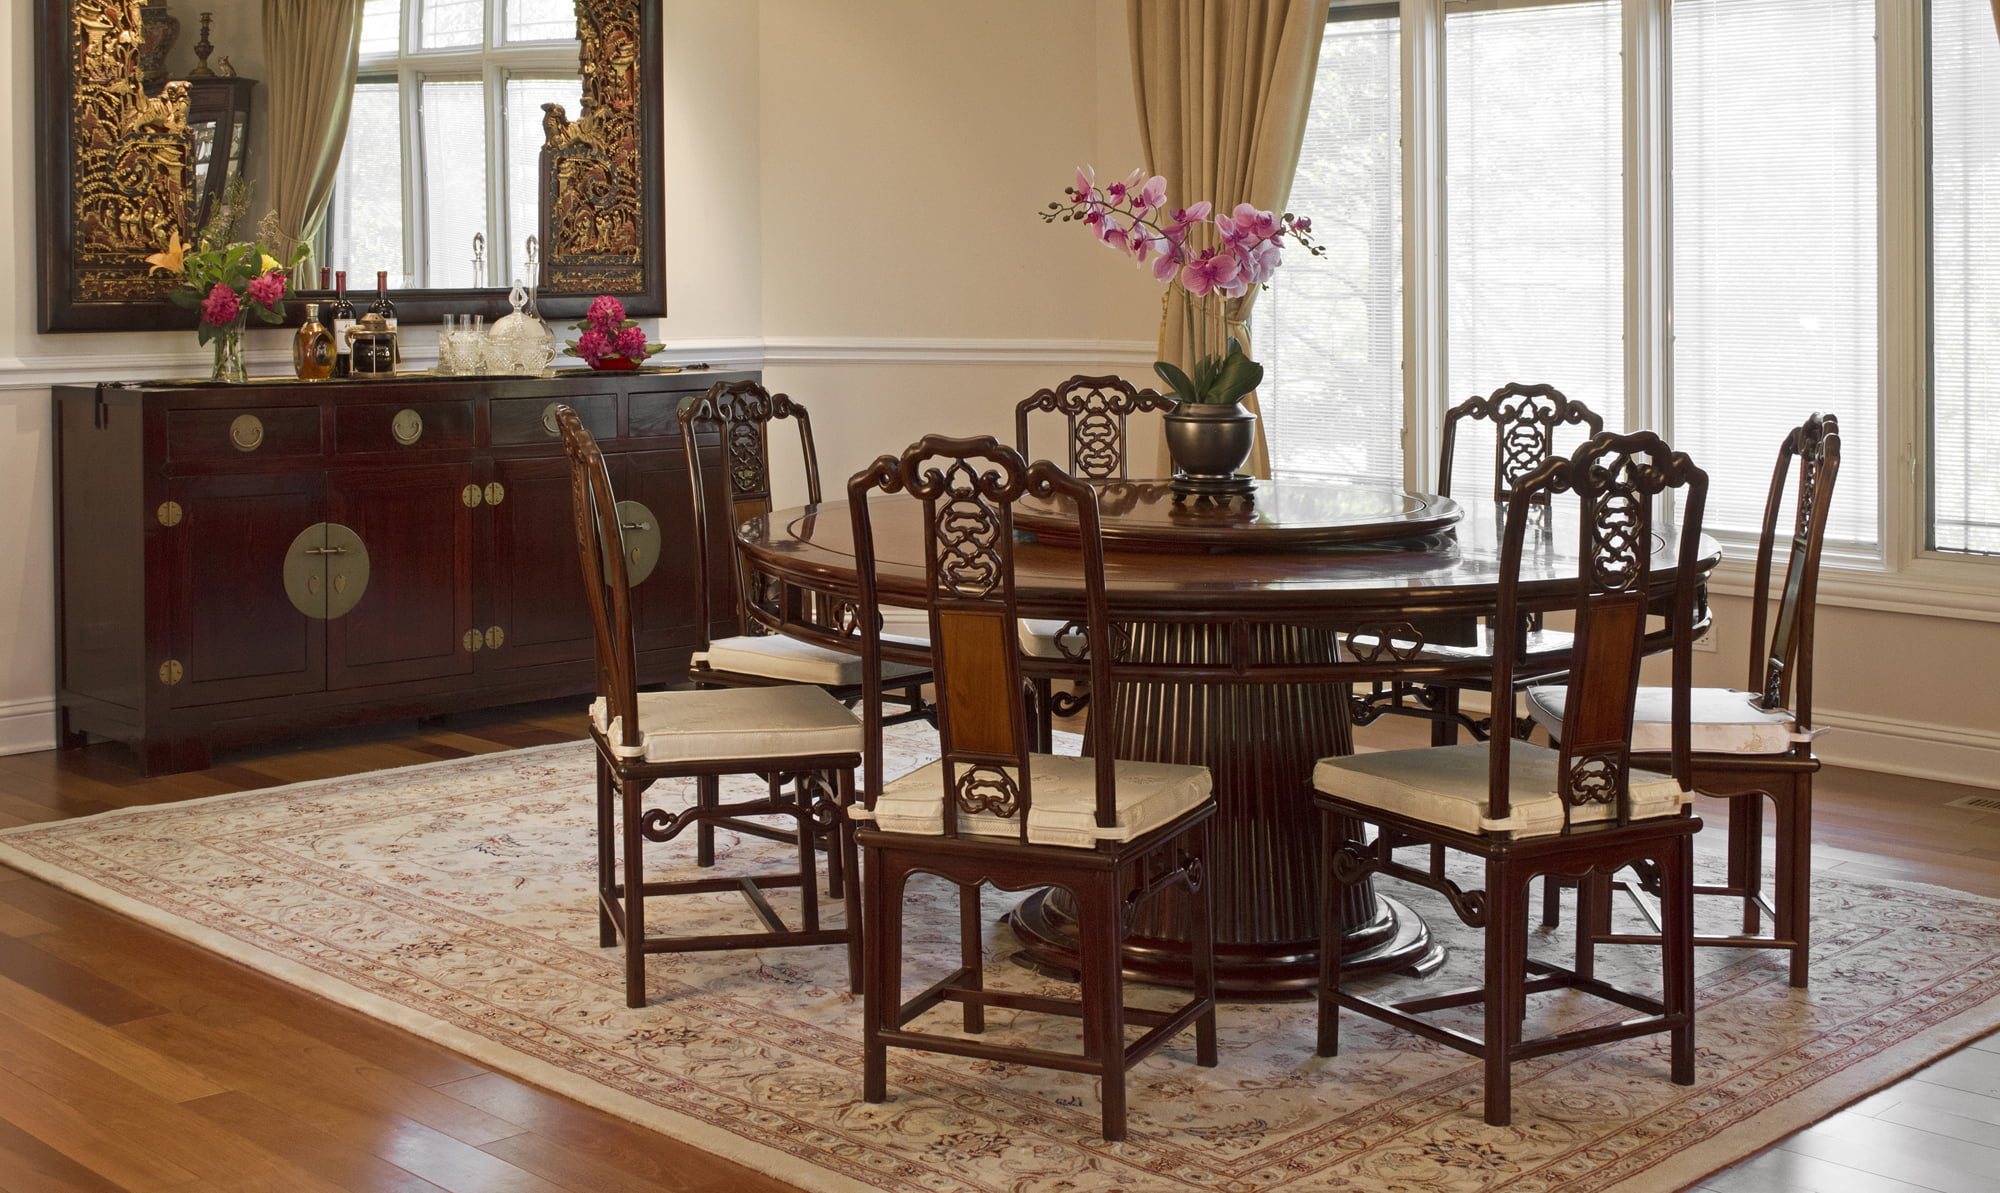 New Home Furnishings Website Carves Out Niche With Asian Influence